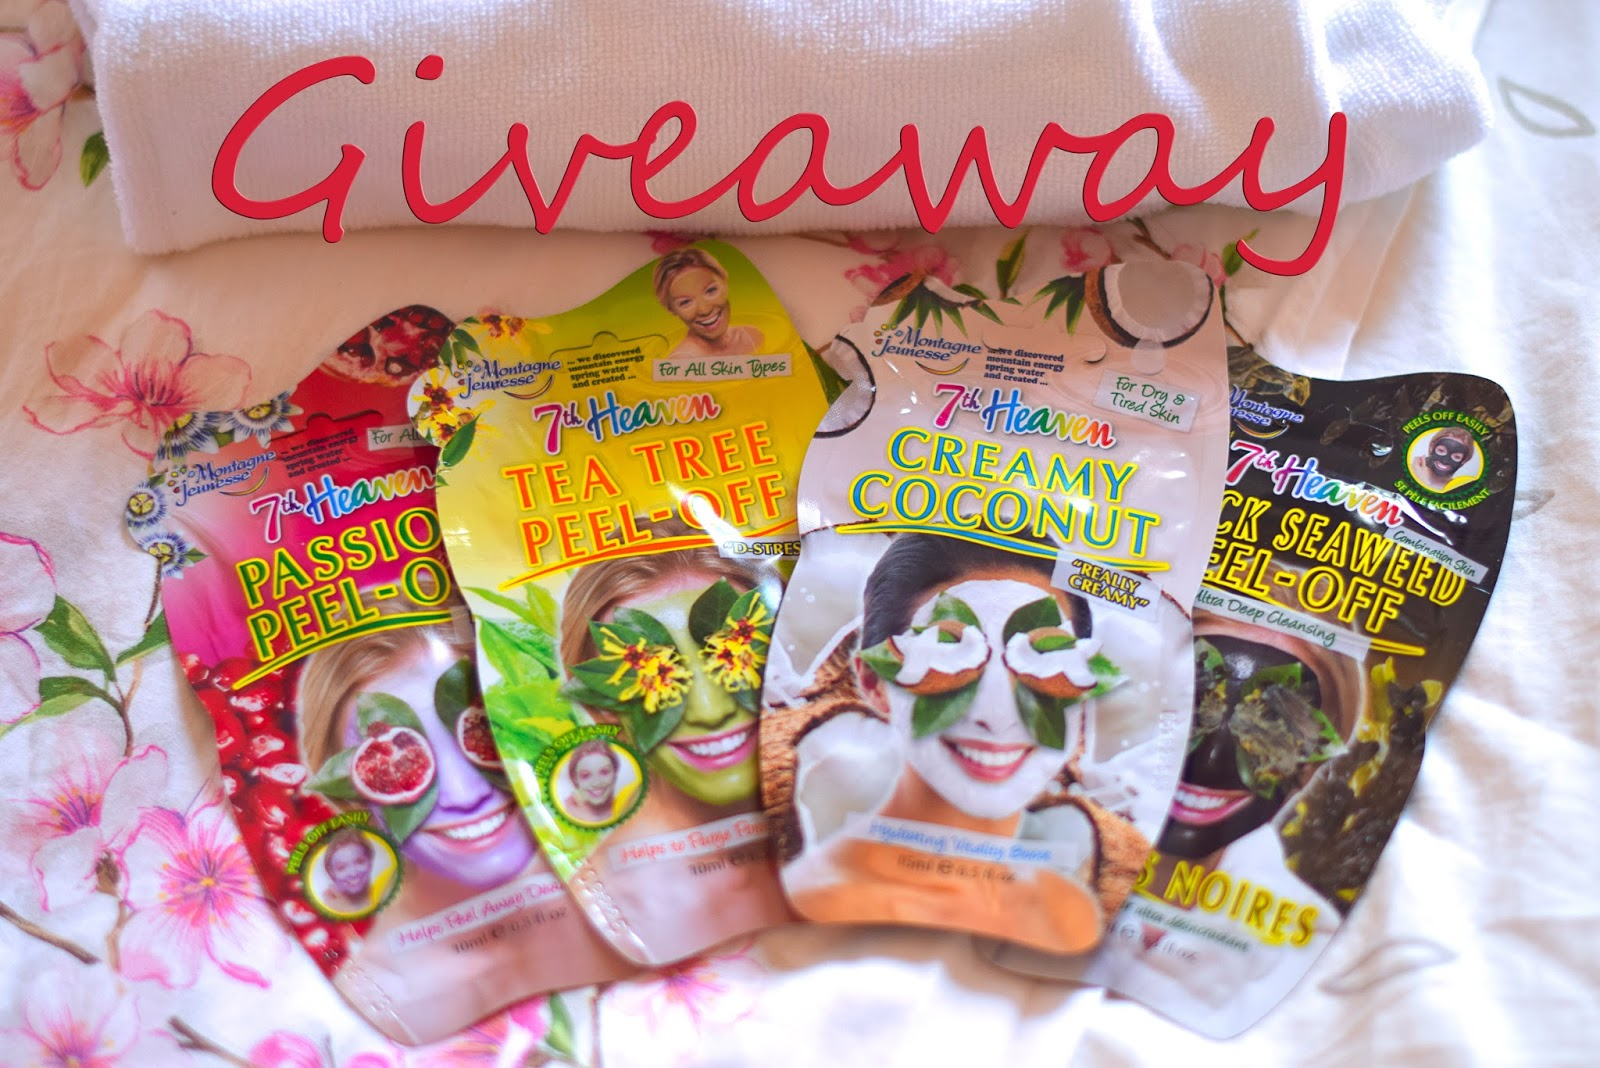 nery hdez, giveaway, montagne jeunesse, 7th heaven ,